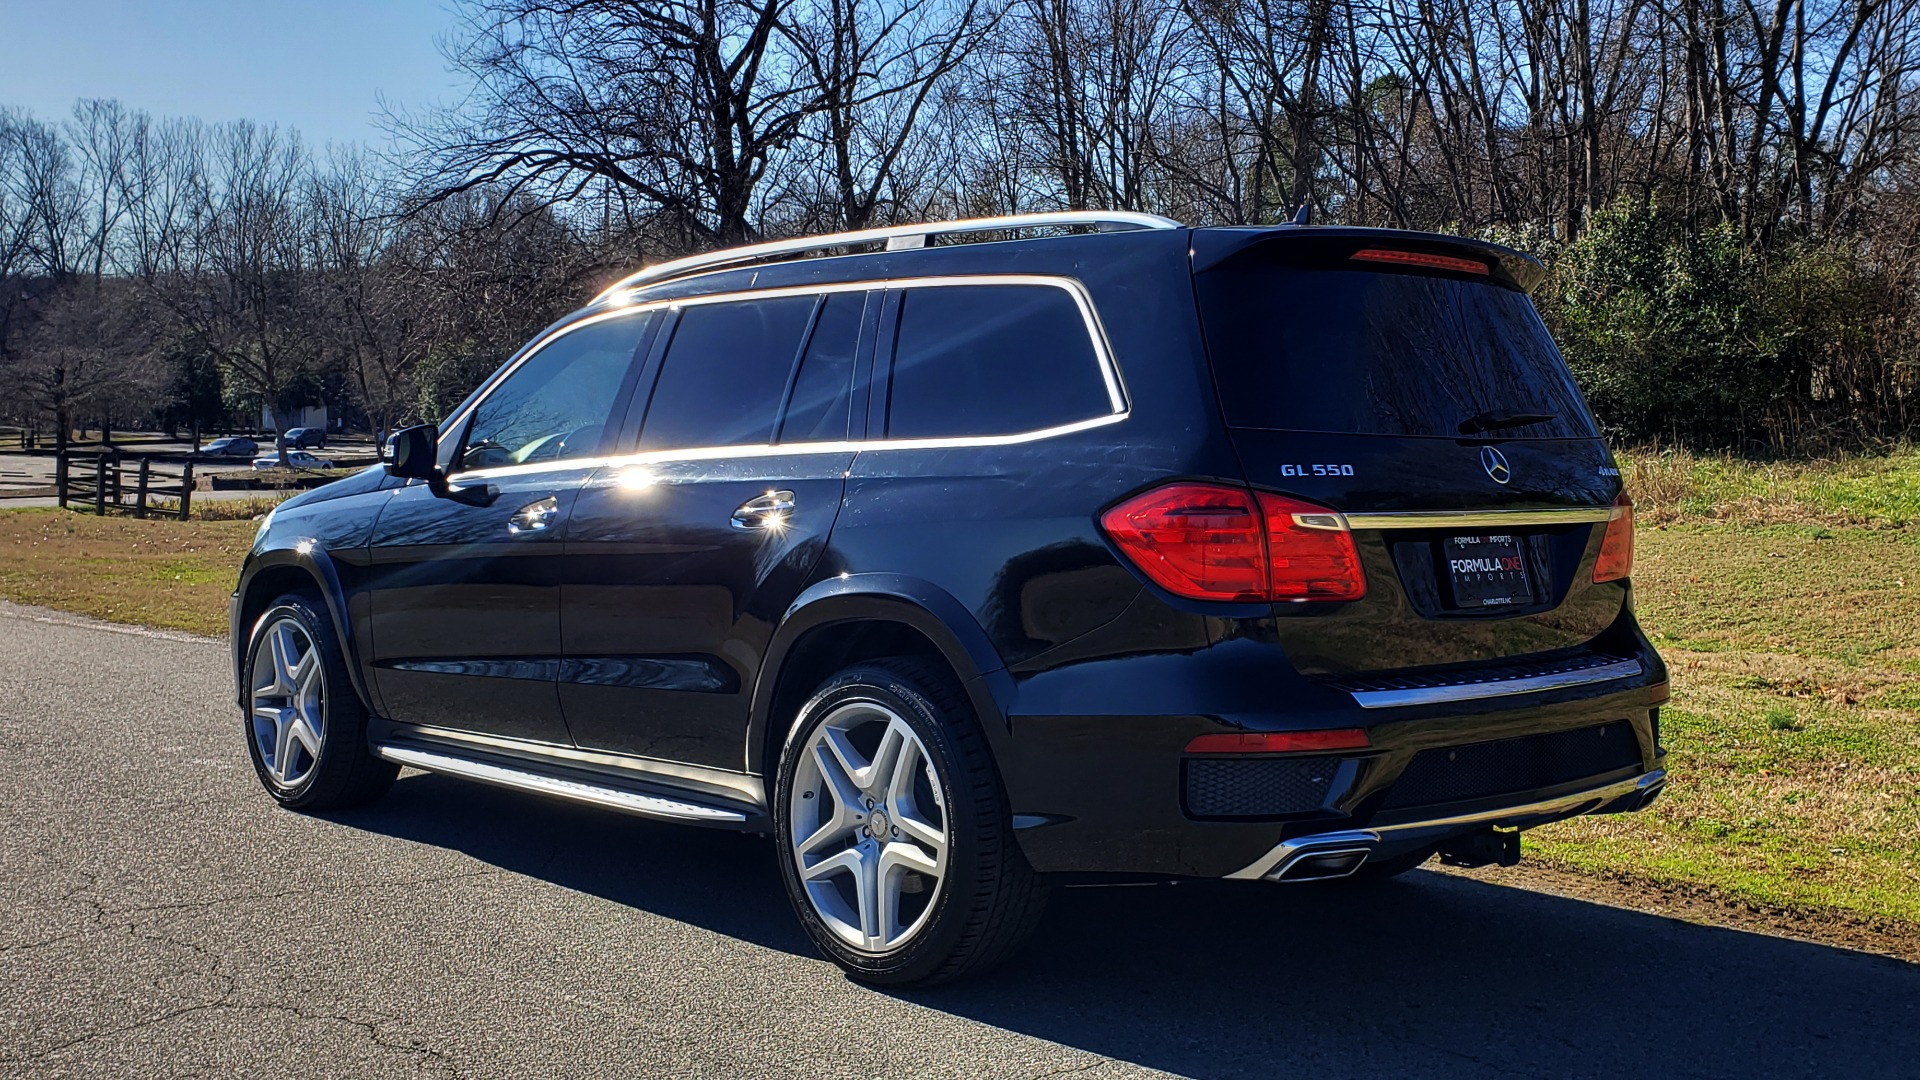 Used 2015 Mercedes-Benz GL-Class GL 550 4MATIC / DRVR ASST / PANO-ROOF / DESIGNO / REARVIEW for sale Sold at Formula Imports in Charlotte NC 28227 3